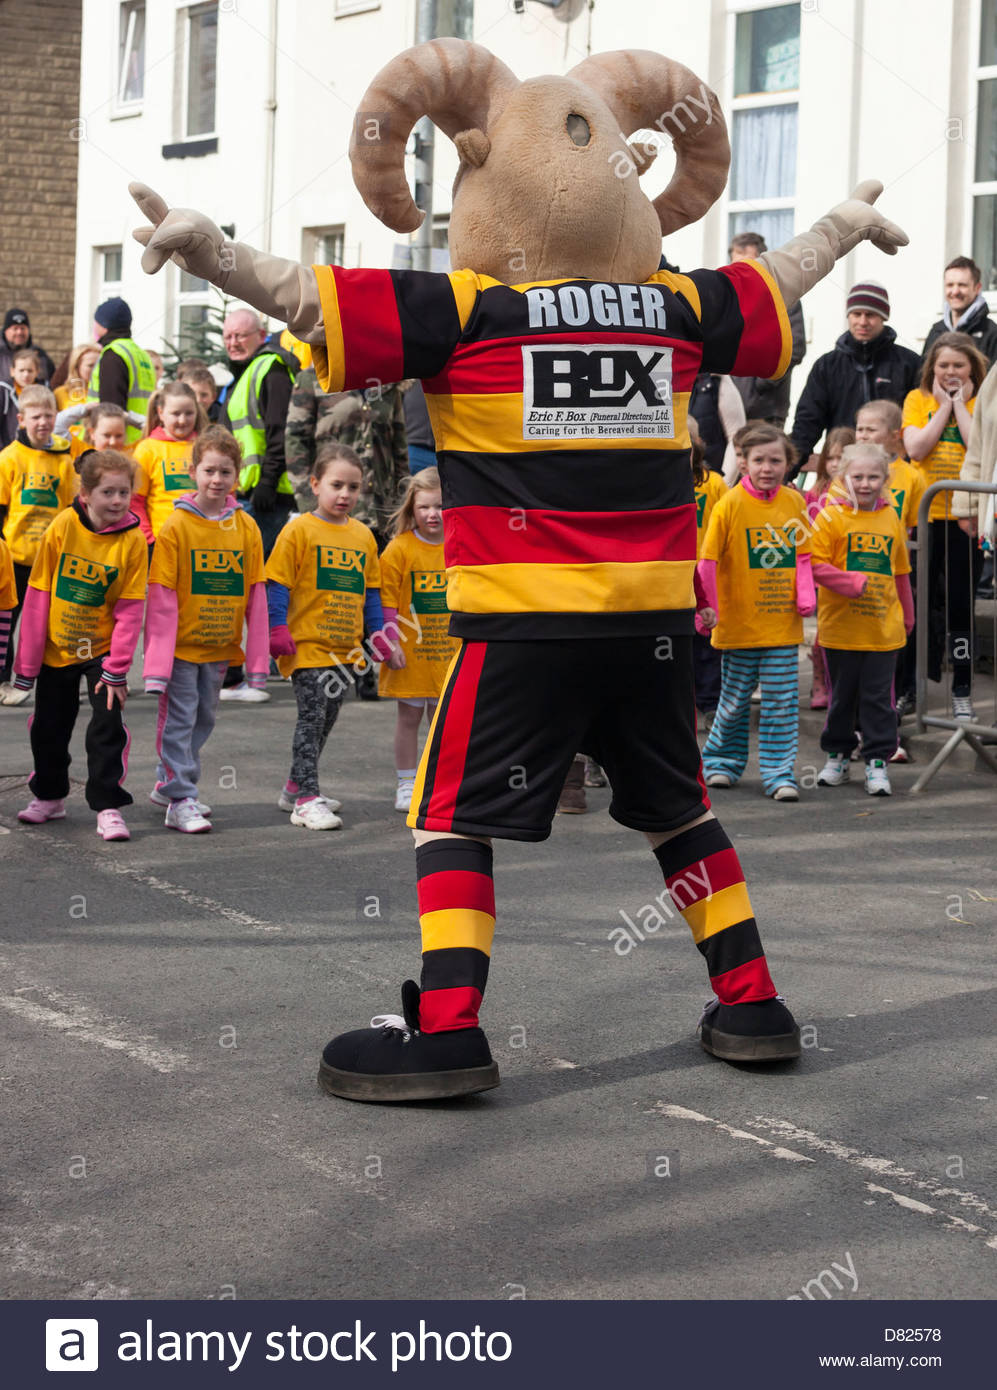 Roger the Ram ( Dewsbury Rams ) mascot starting the girls race at the World Coal Carrying Championships day Gawthorpe - Stock Image